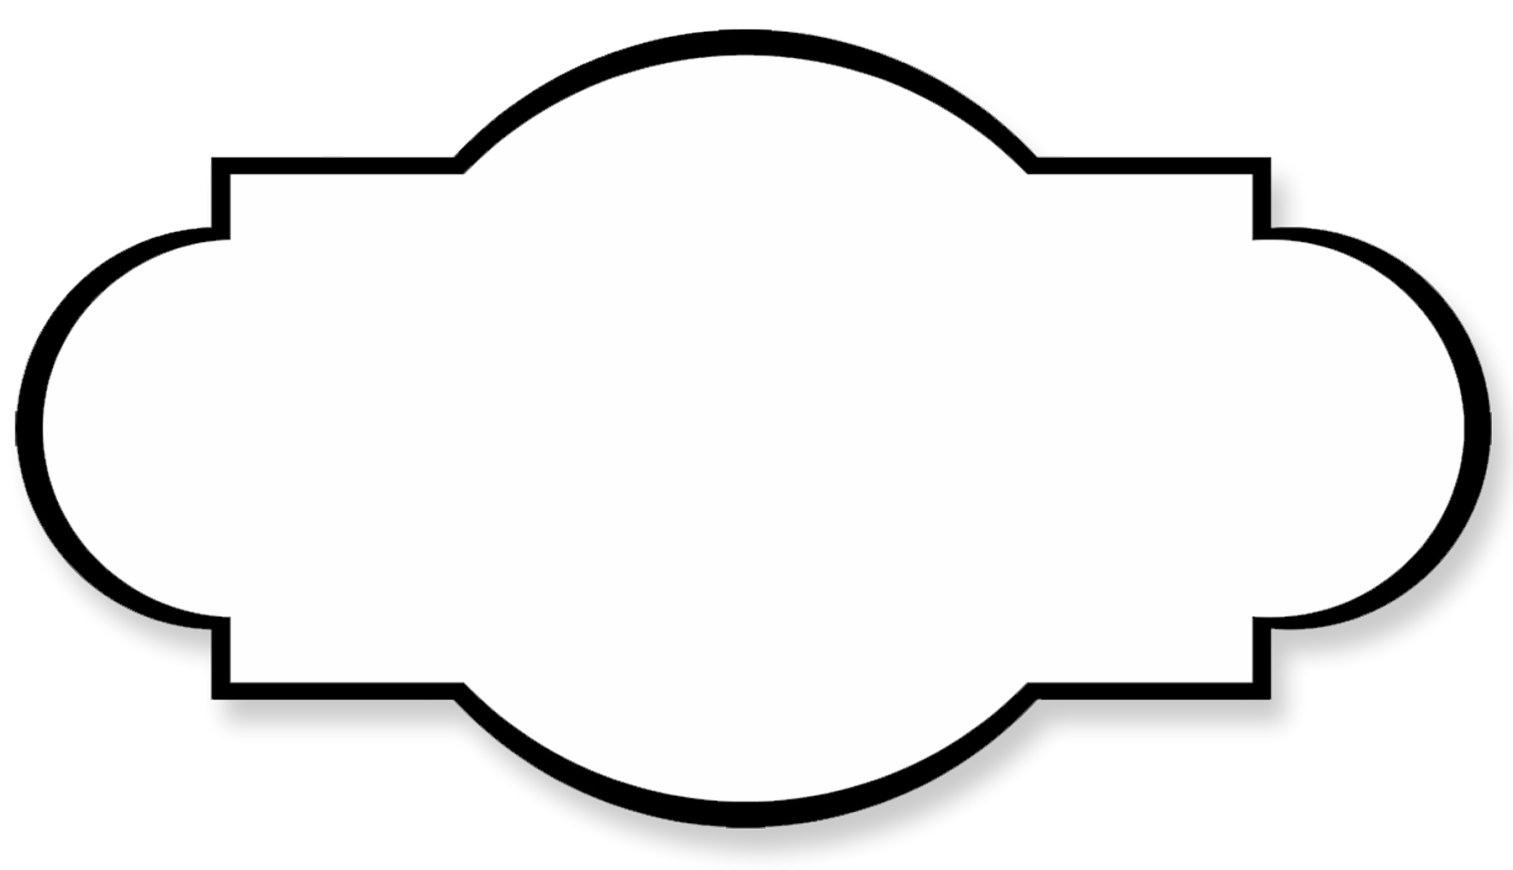 shared simple frames. Pencil clipart label